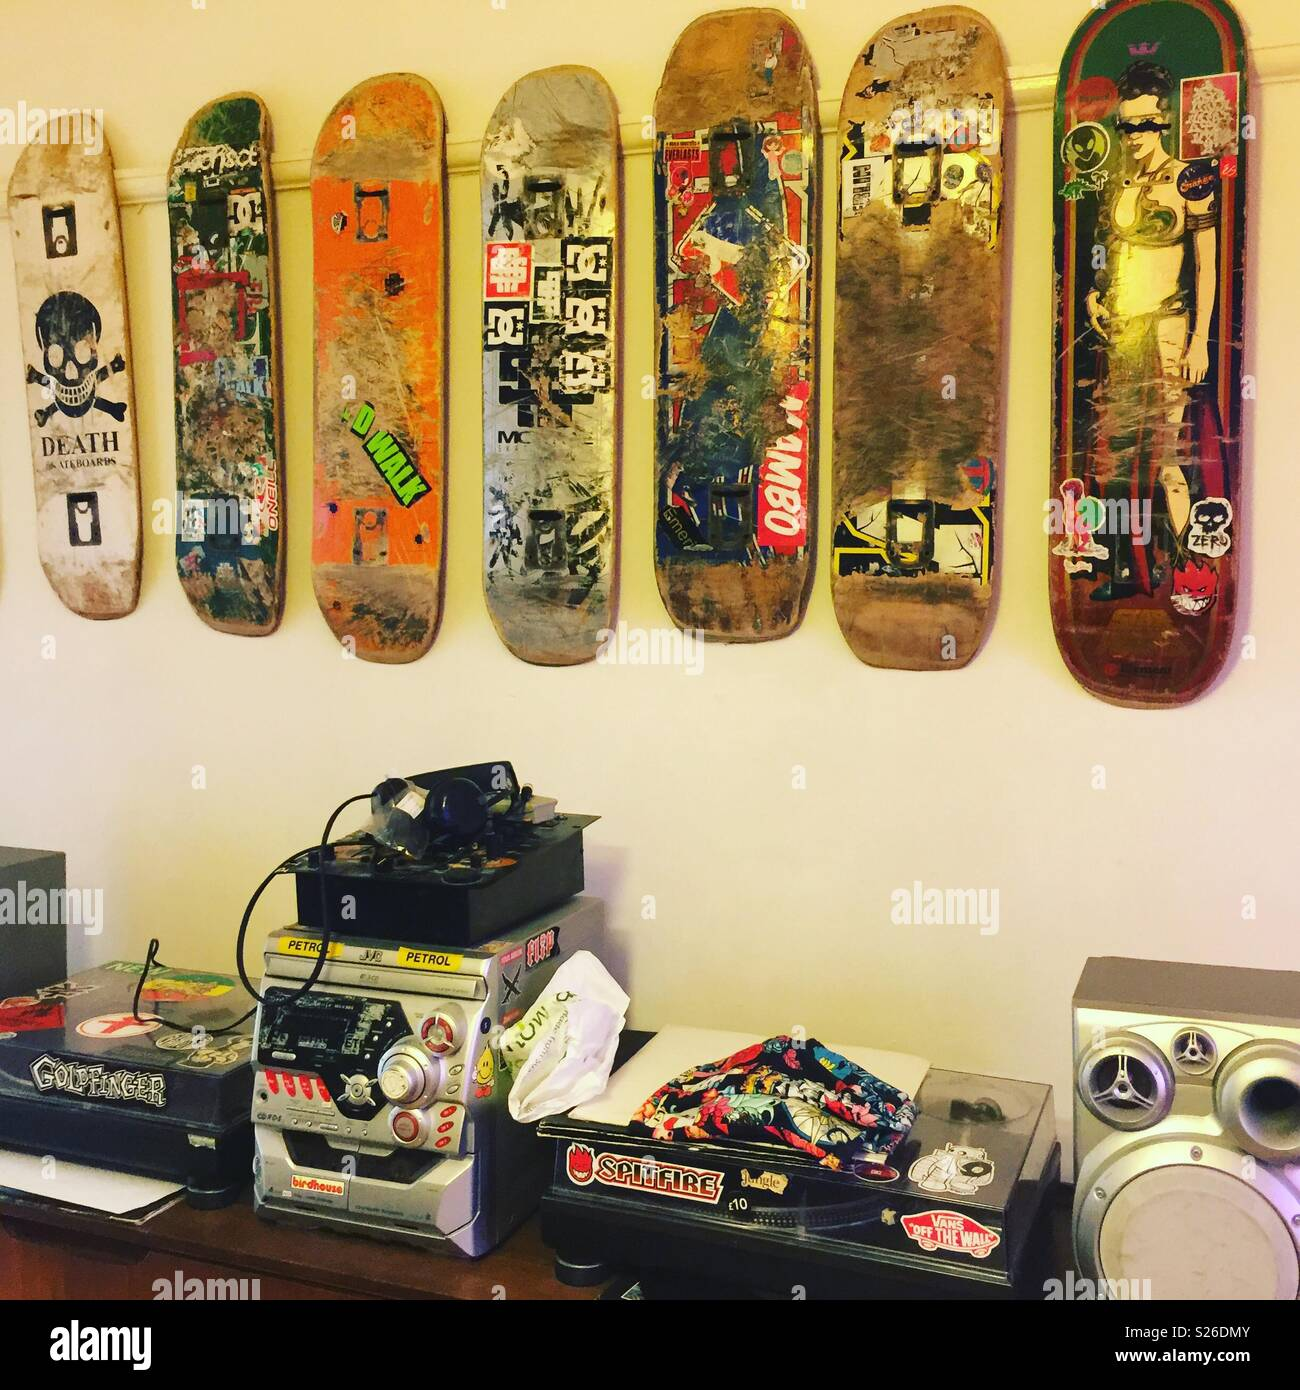 Used skateboards Stock Photo: 311158427 - Alamy